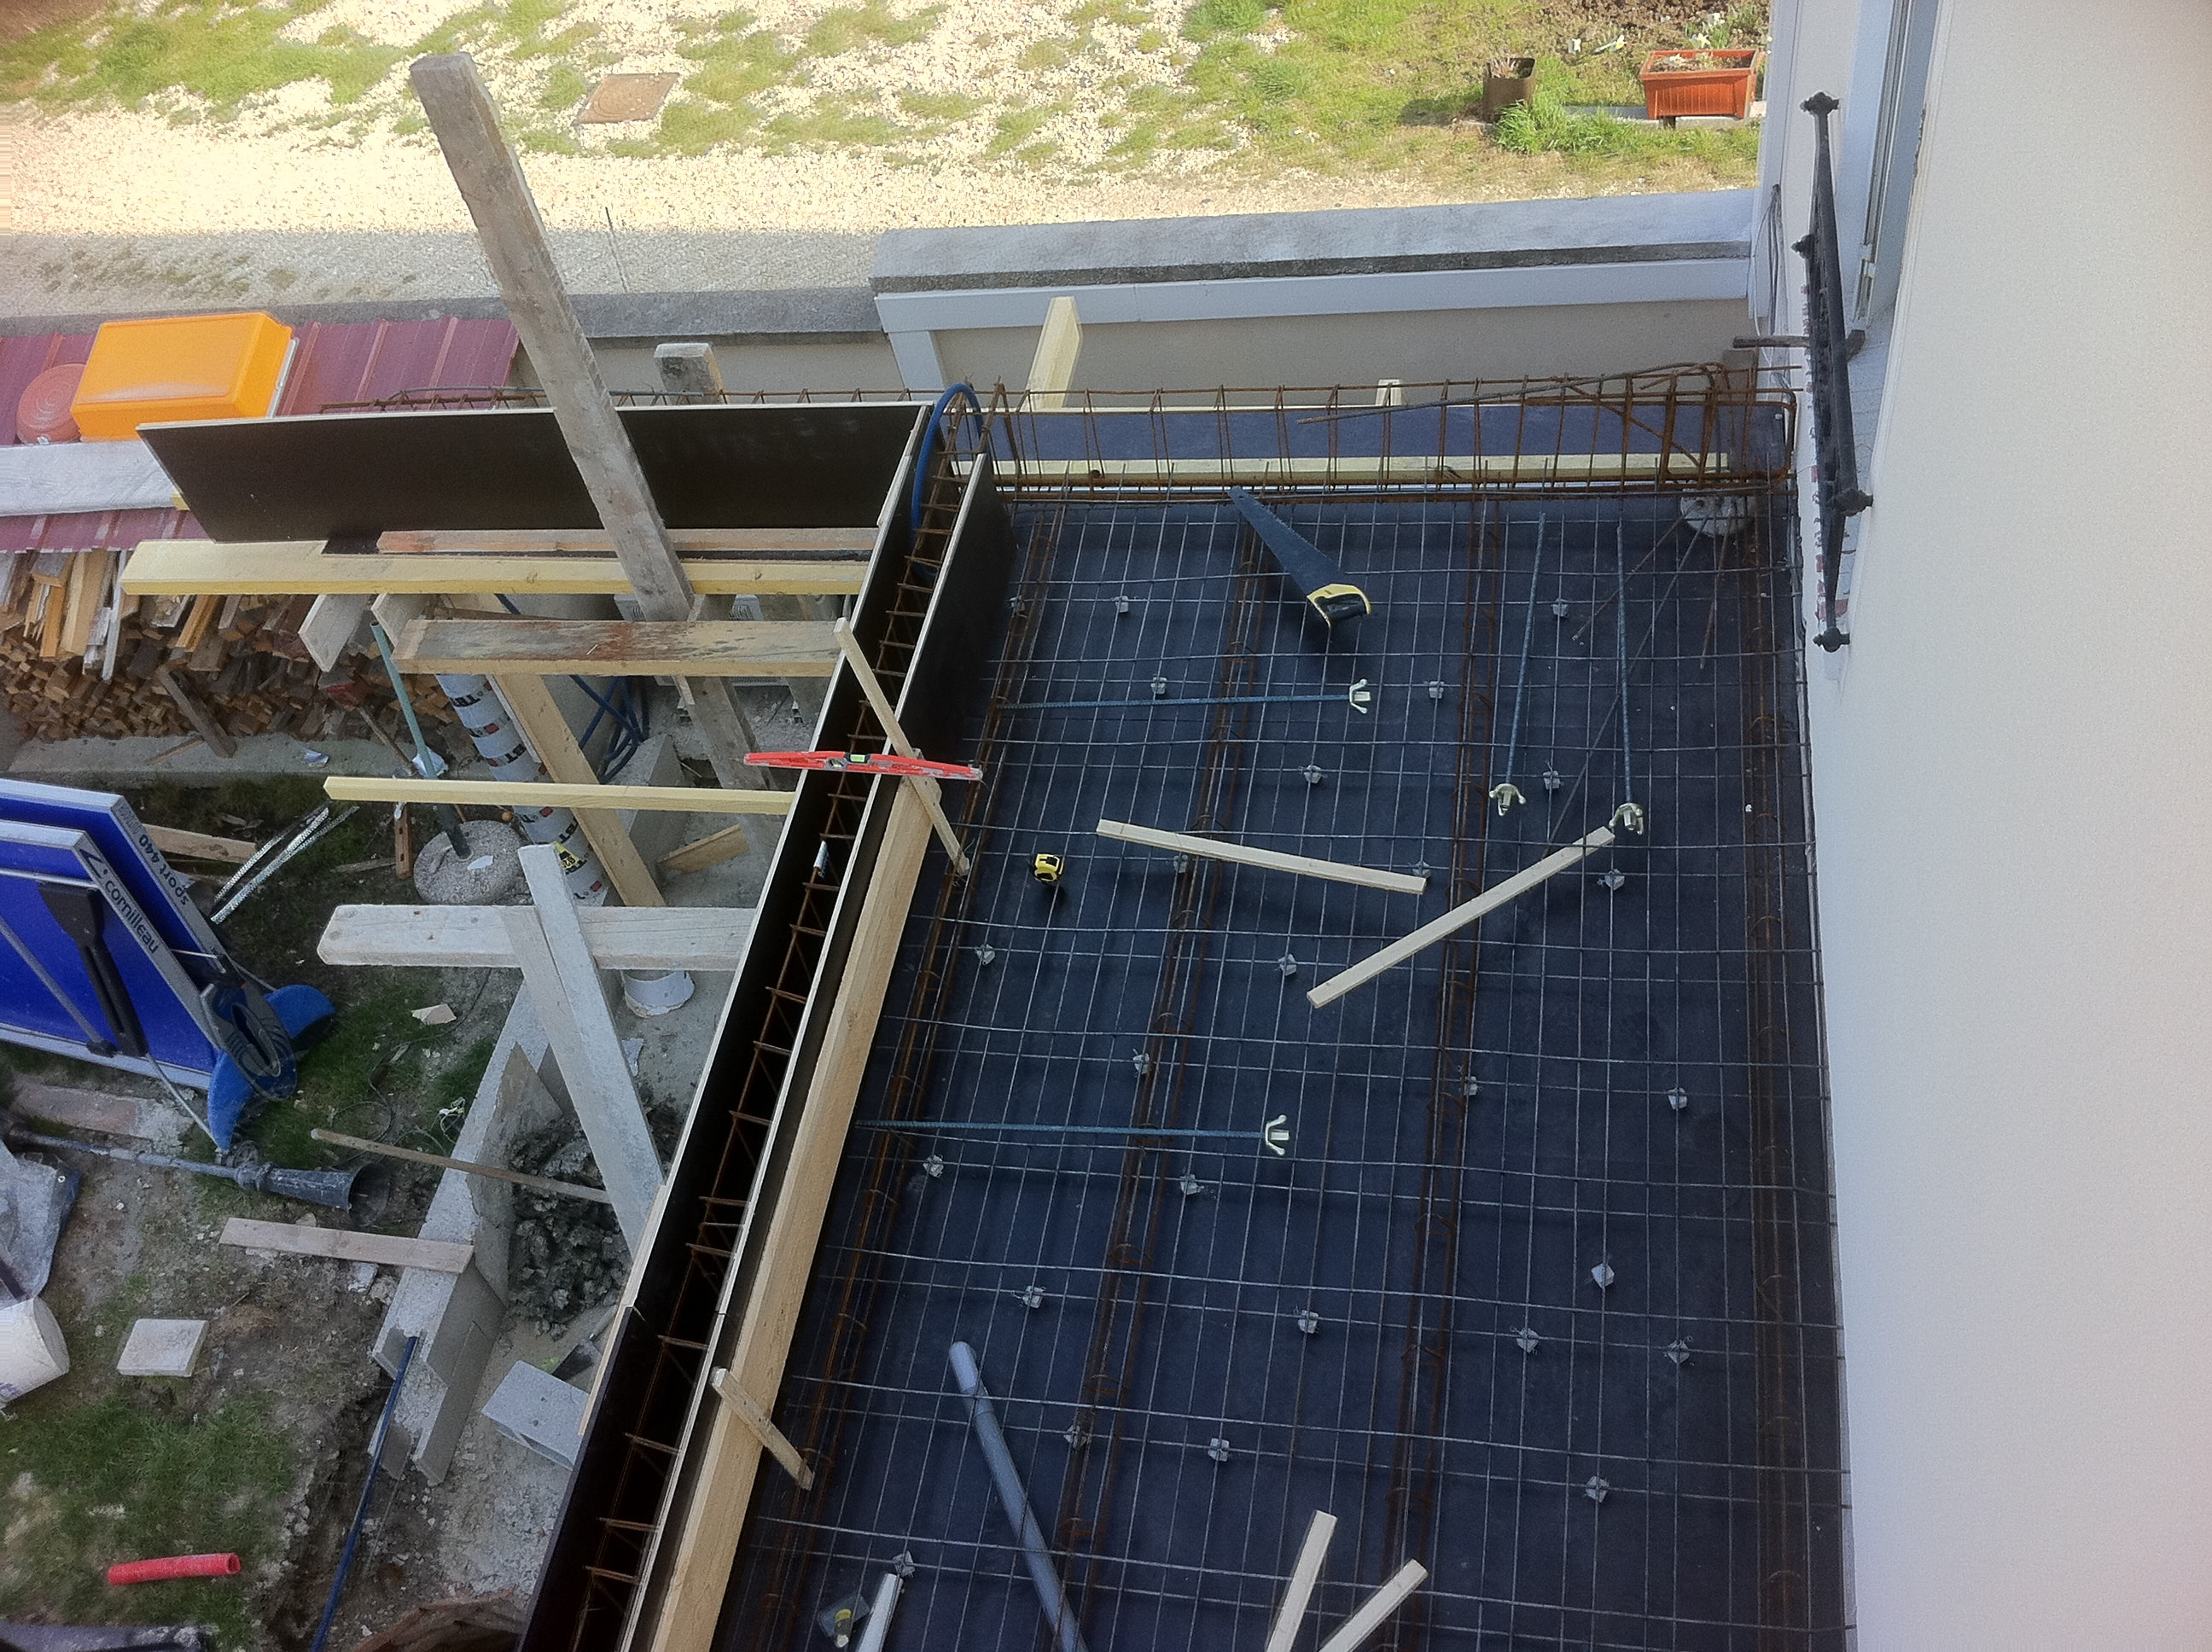 travaux-creation-terrasse-2-agrandissement-balcon-pendant-texas-batiment-min